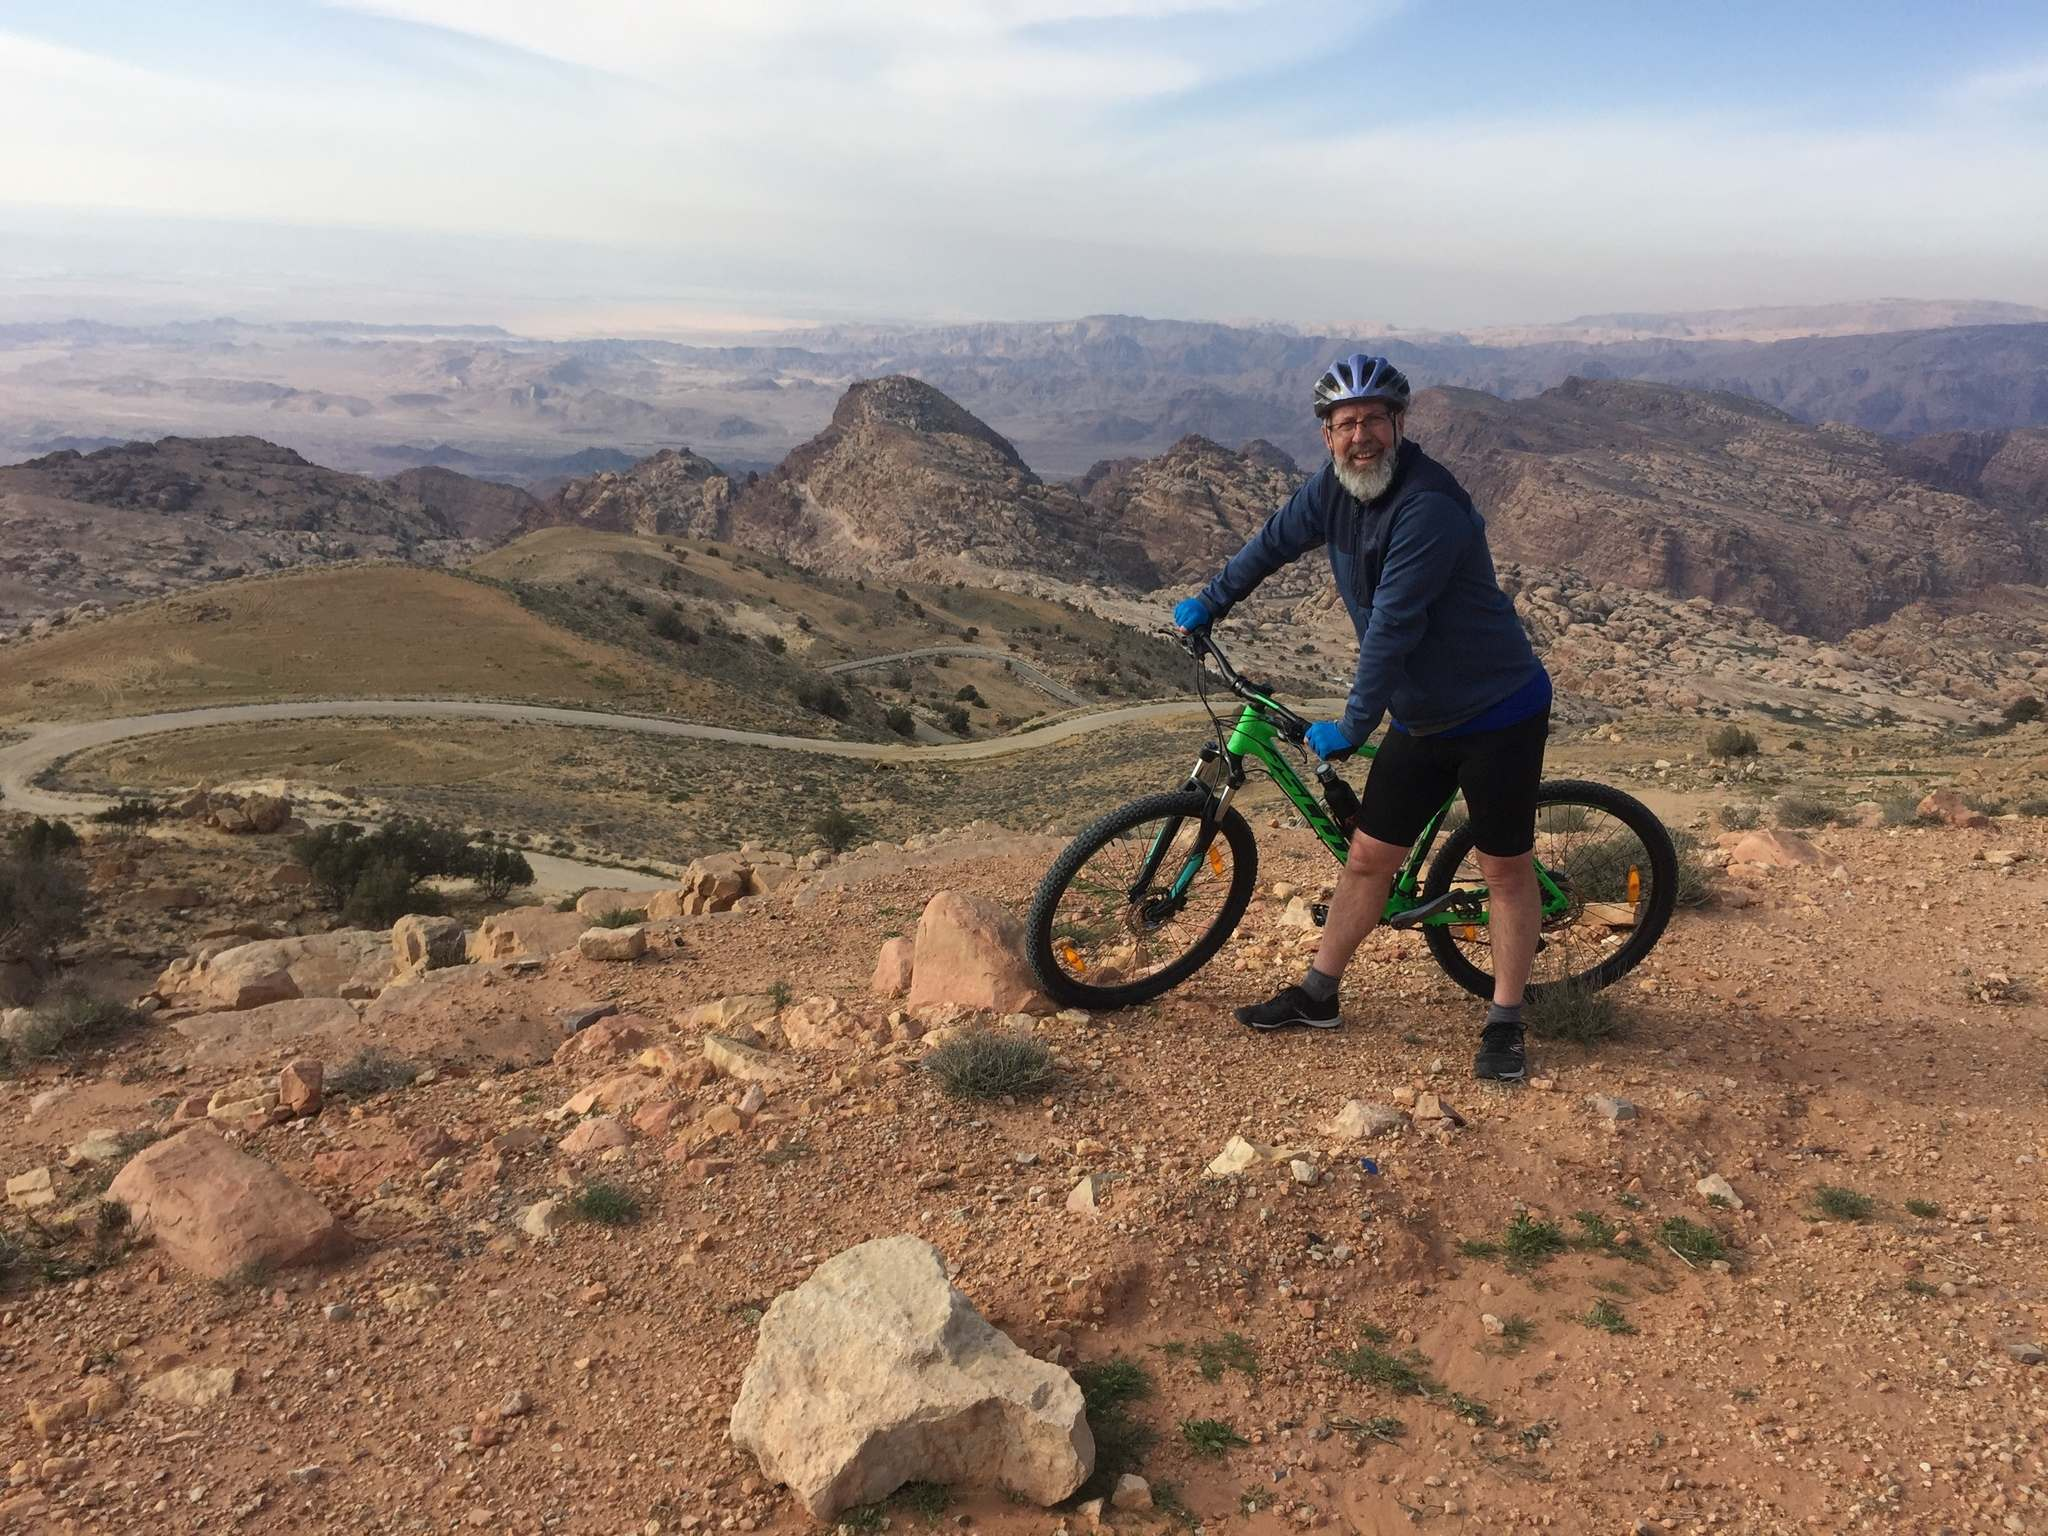 A full year of biking all over the globe for Lyons started in Jordan.</p>